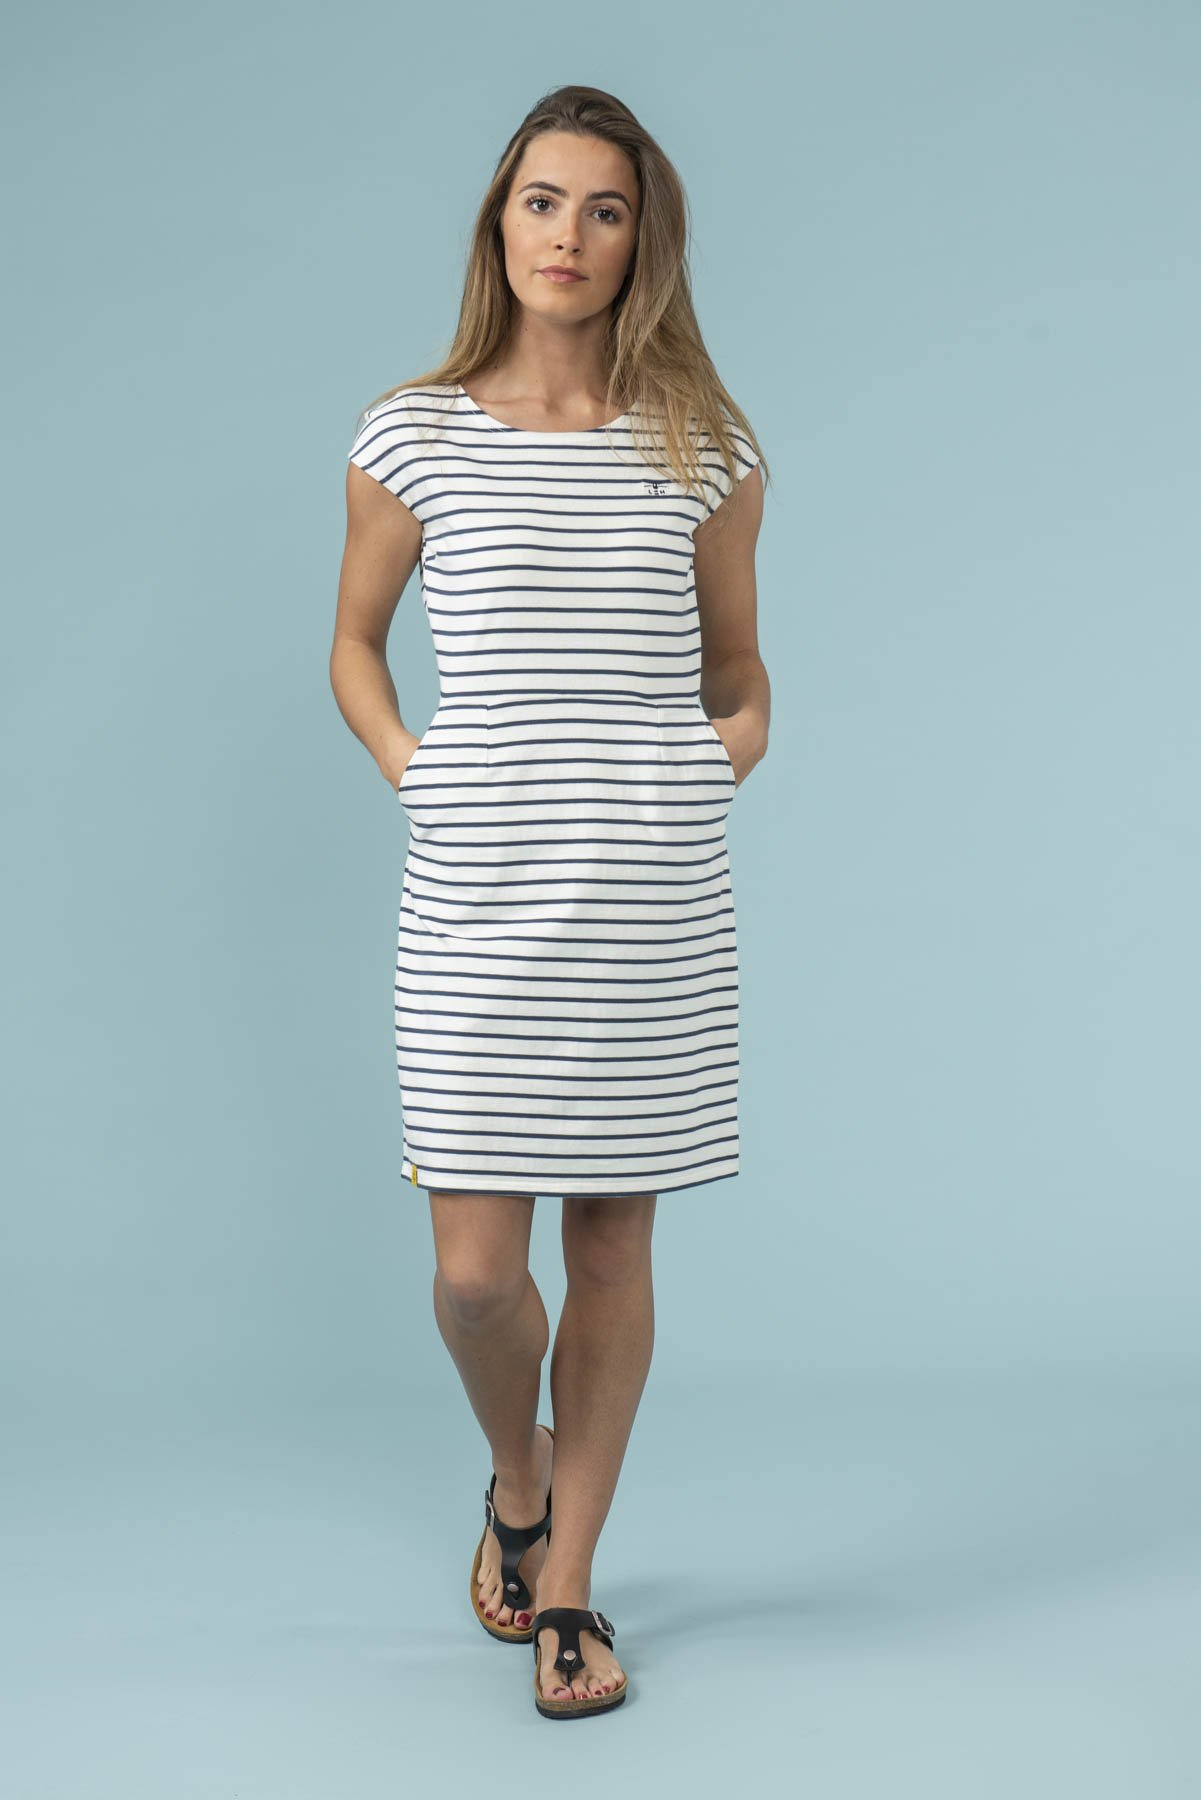 lilianna white striped dress from lighthouse clothing